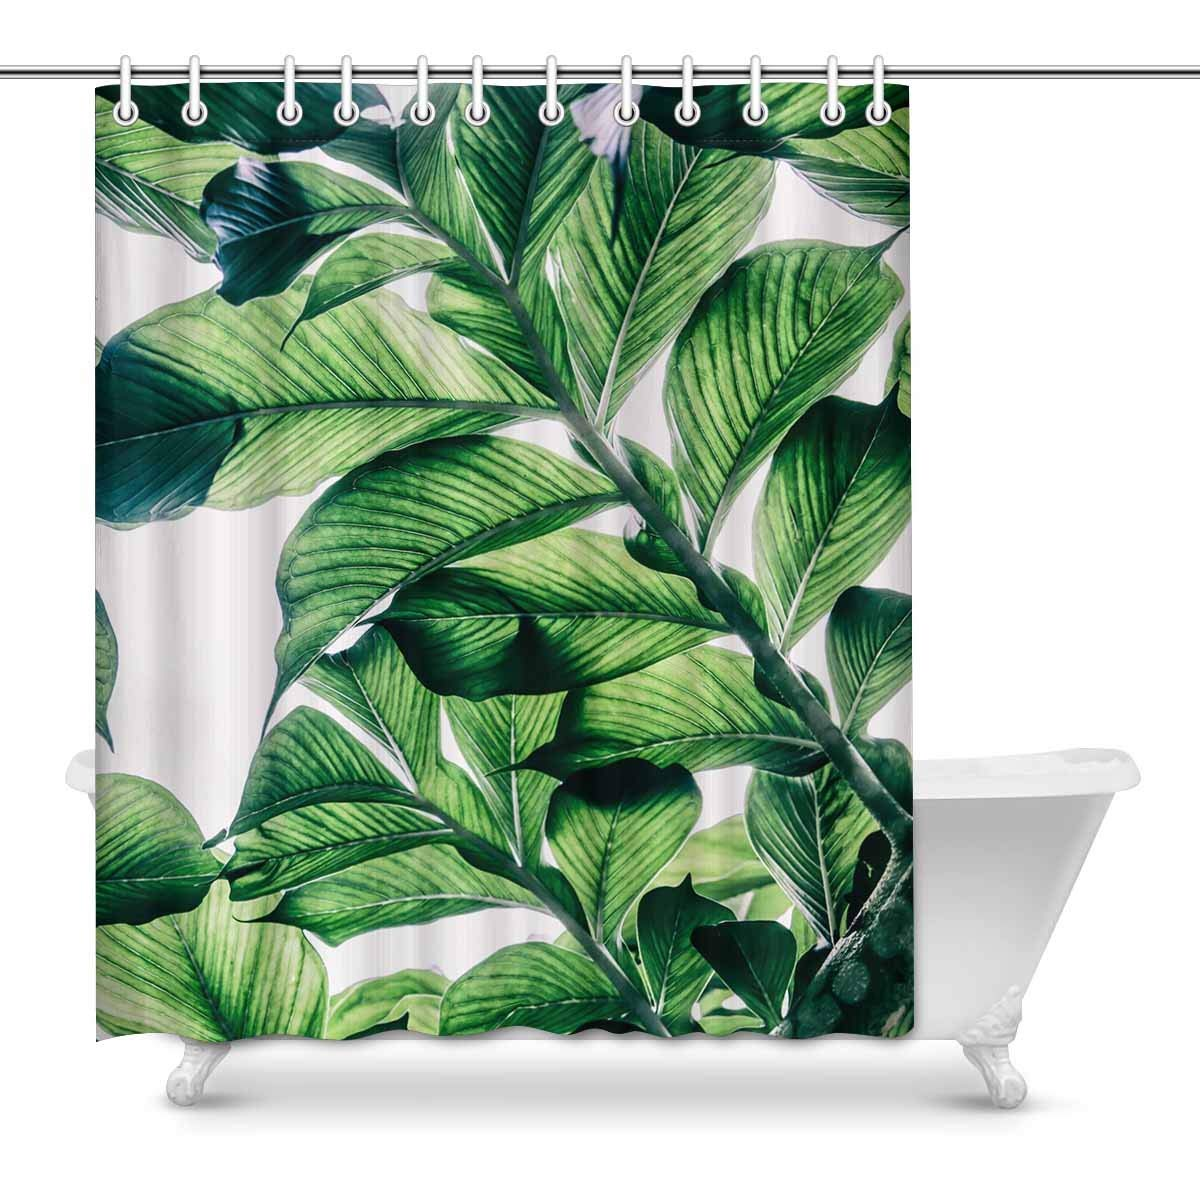 GCKG Green Leaf Shower Curtain Tropical Jungle Polyester Fabric Bathroom Sets 60x72 Inches